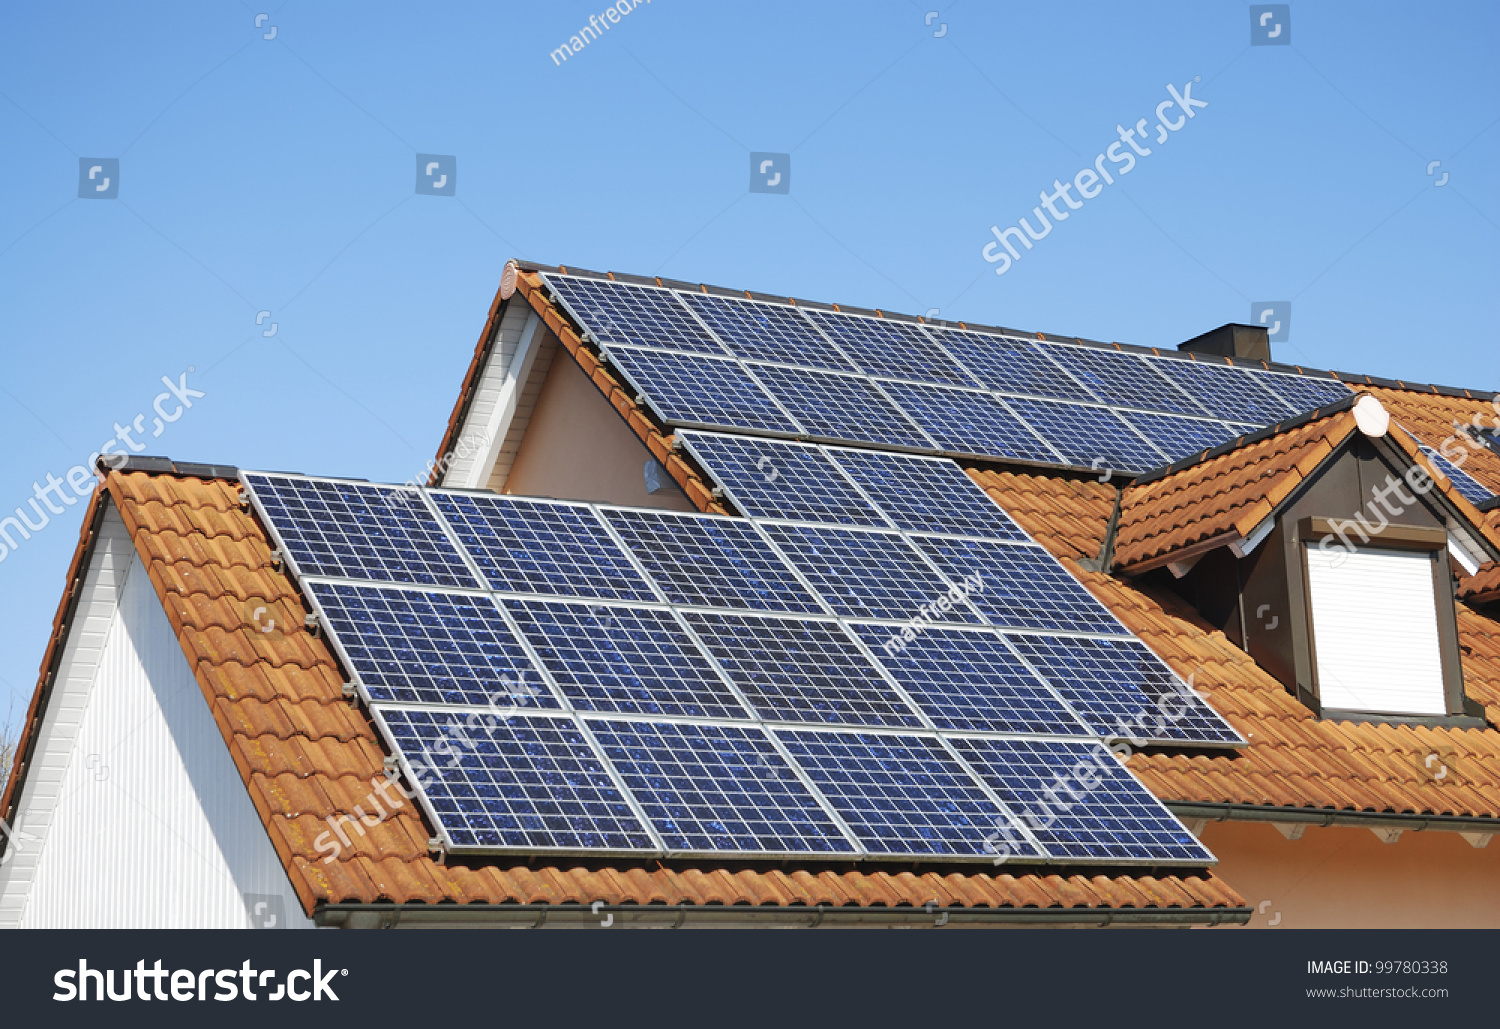 Solar Panels On The House Roof Stock Photo 99780338 : Shutterstock